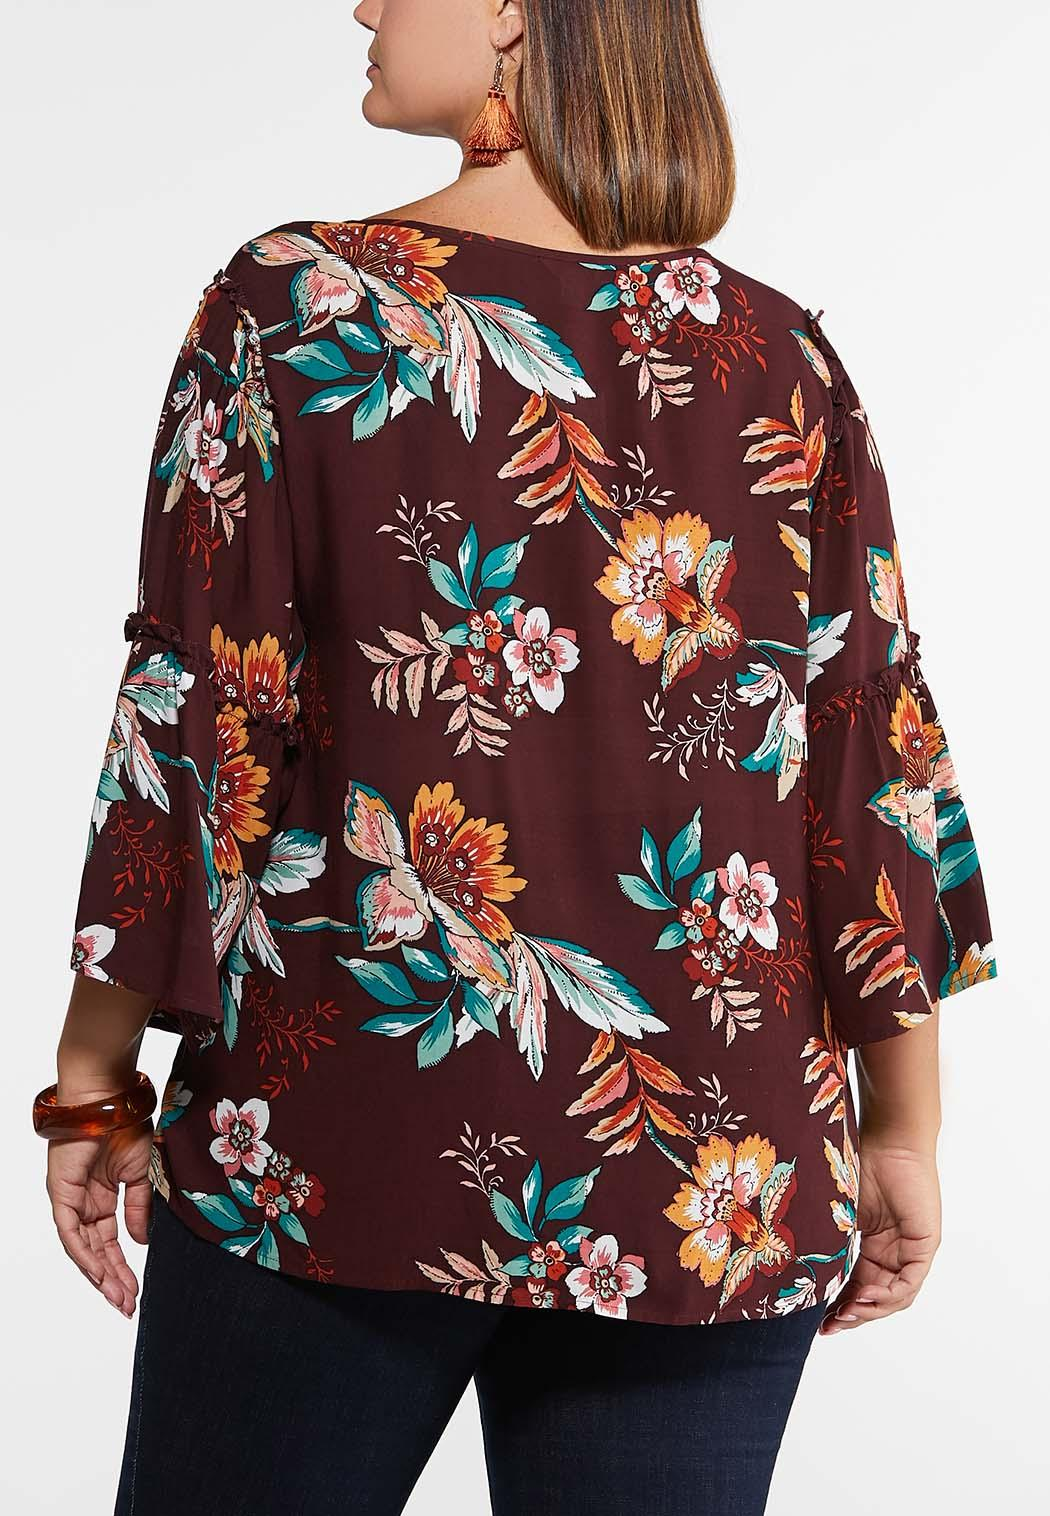 Plus Size Ruffle Sleeve Floral Poet Top (Item #43969243)